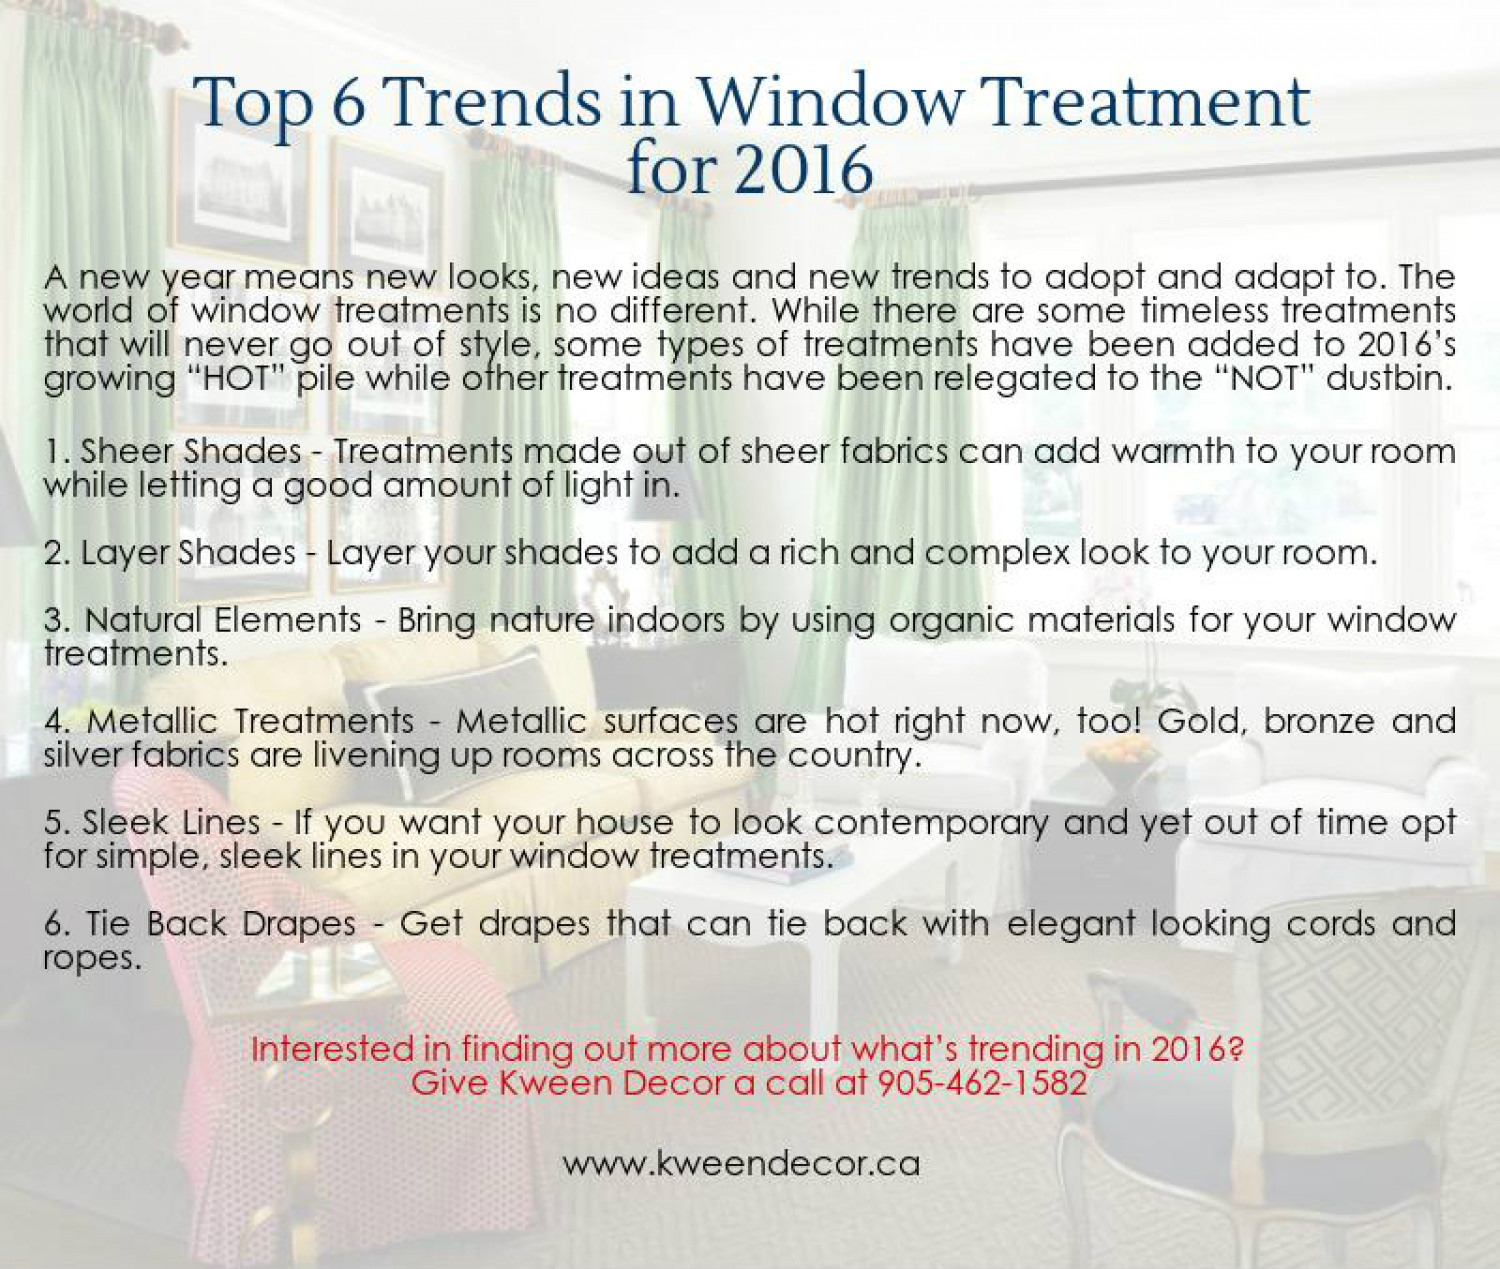 6 Trends in Window Treatments 2016 Infographic